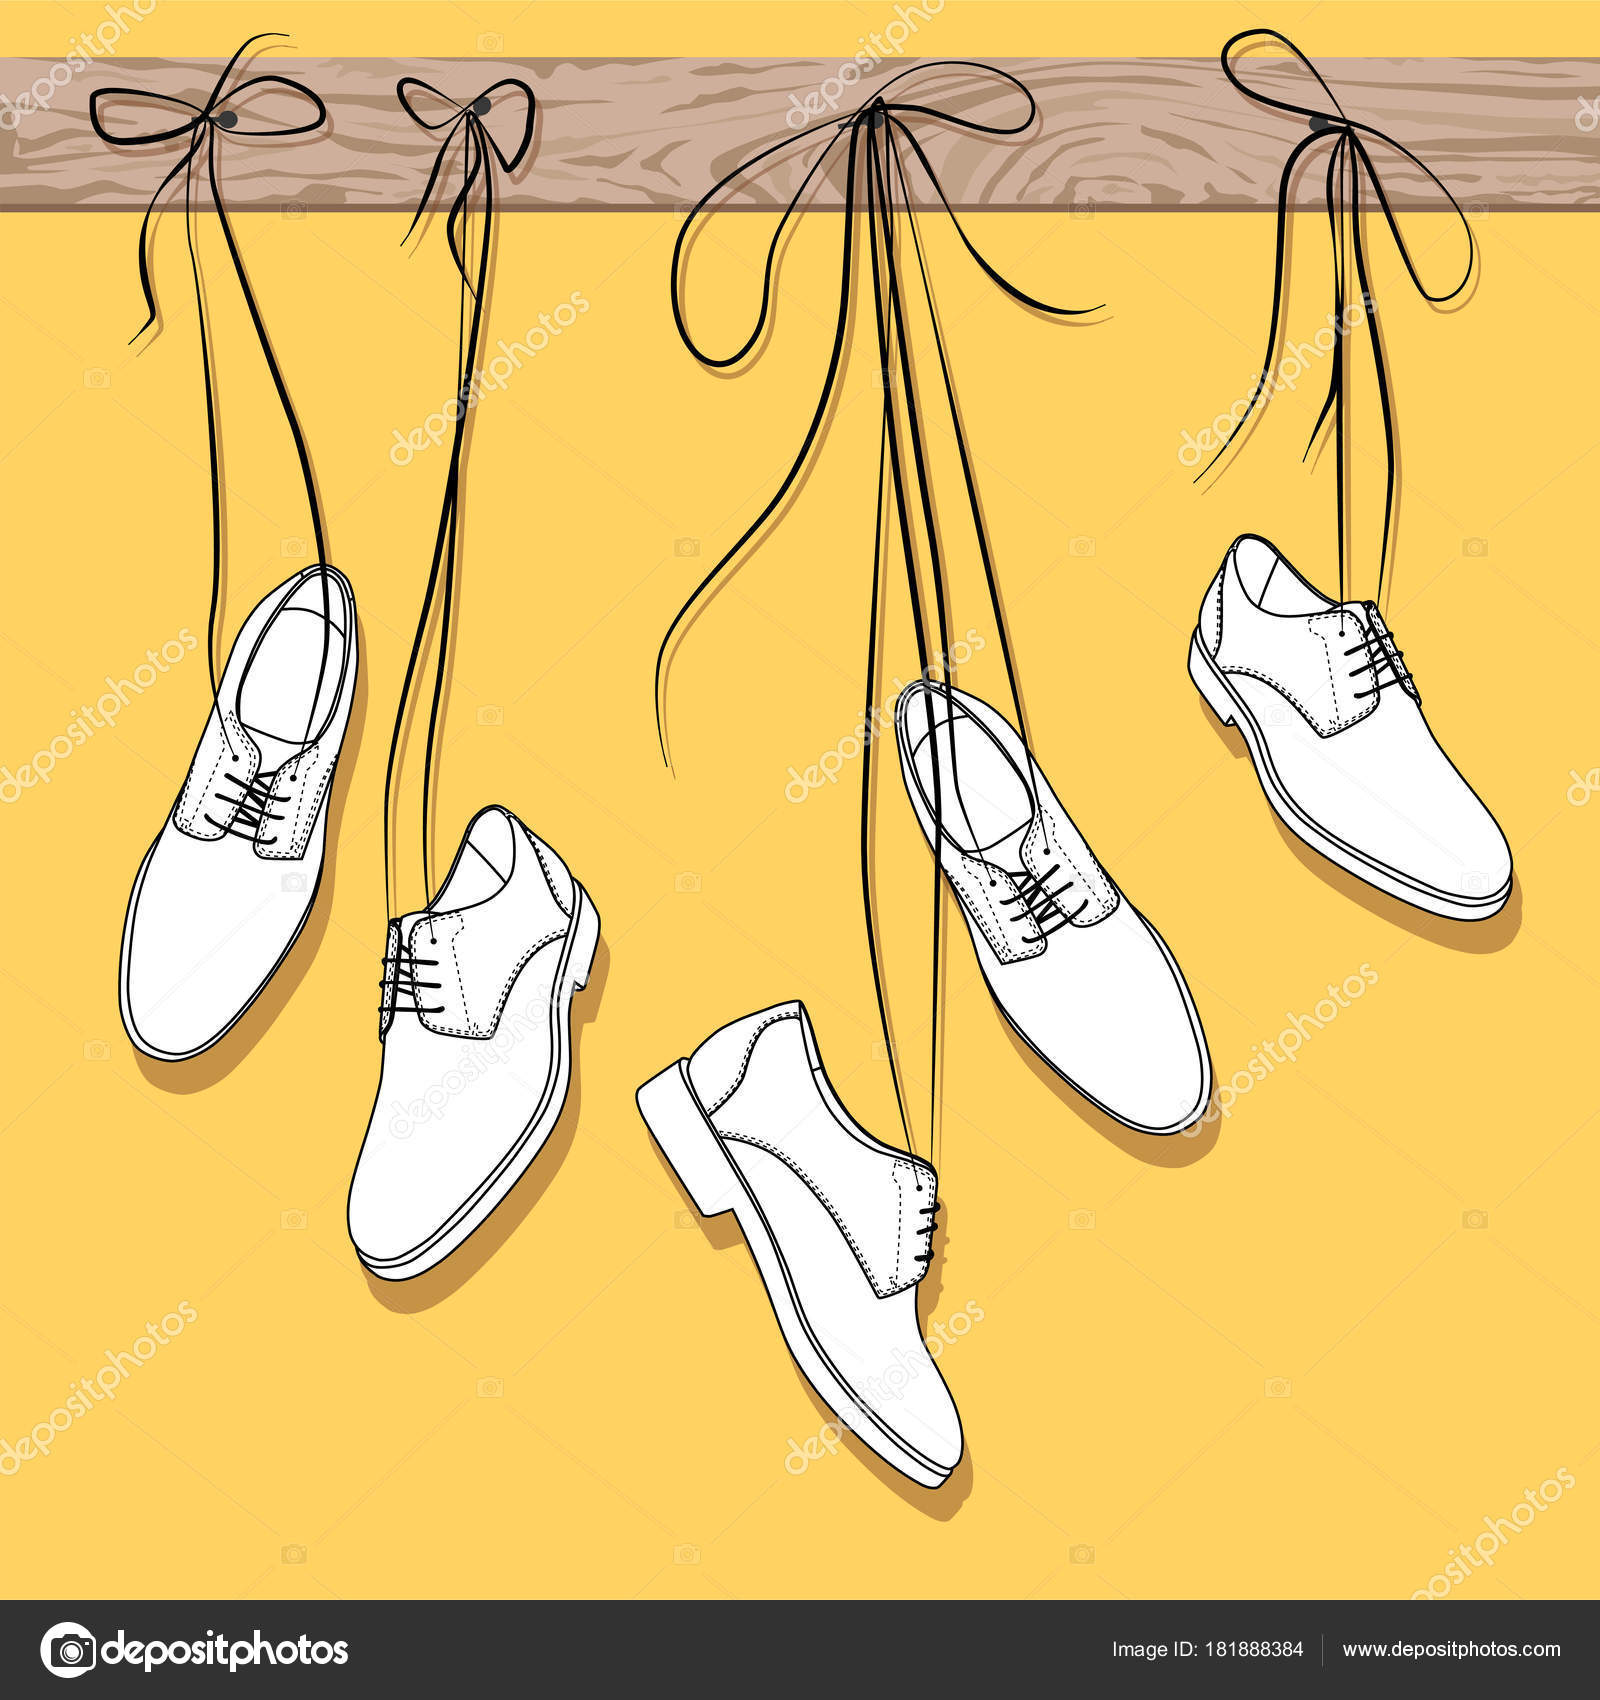 057c574652a6f9 depositphotos_181888384-stock-illustration-shoes-hanging-laces-vector-illustration.jpg